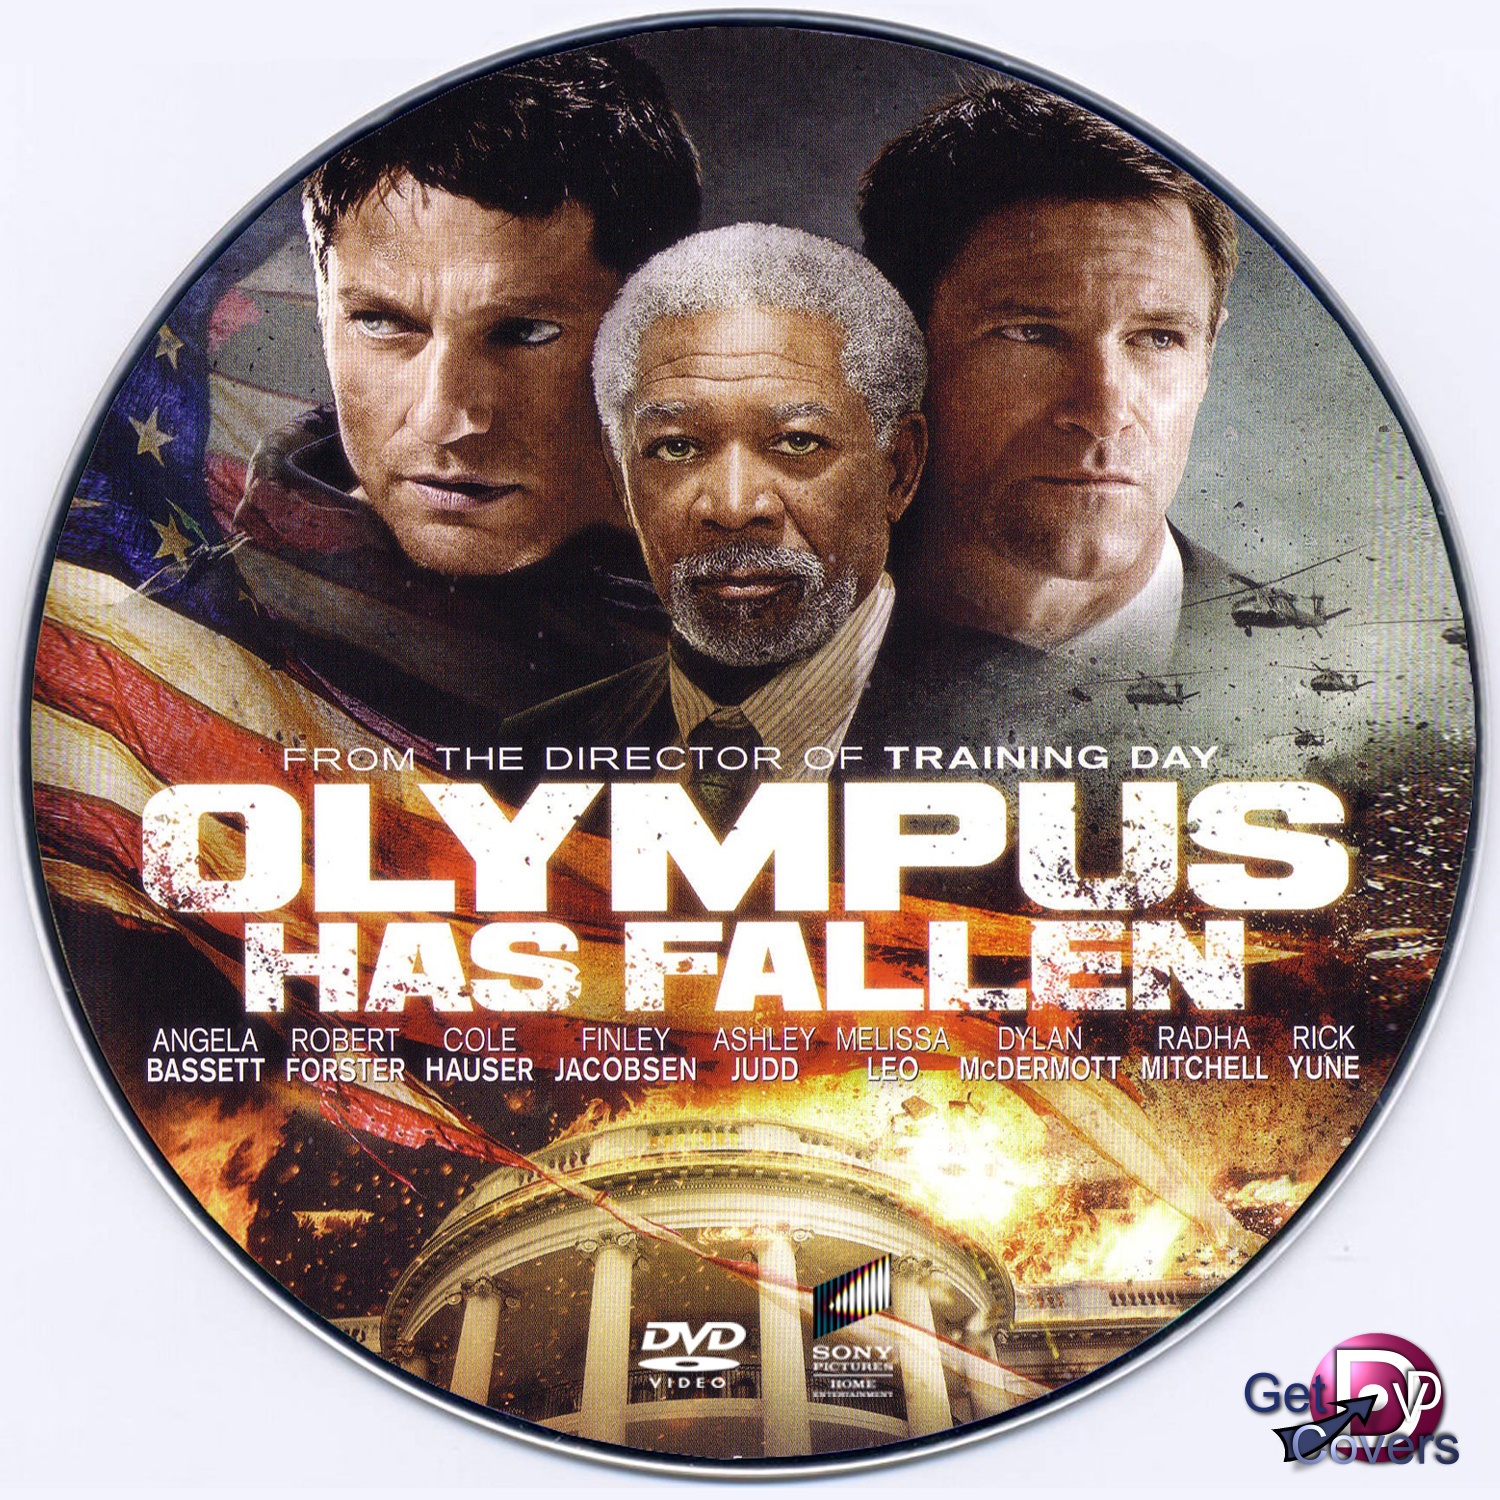 Olympus Has Fallen 2013 Cd1 Dvd Covers Cover Century Over 500 000 Album Art Covers For Free